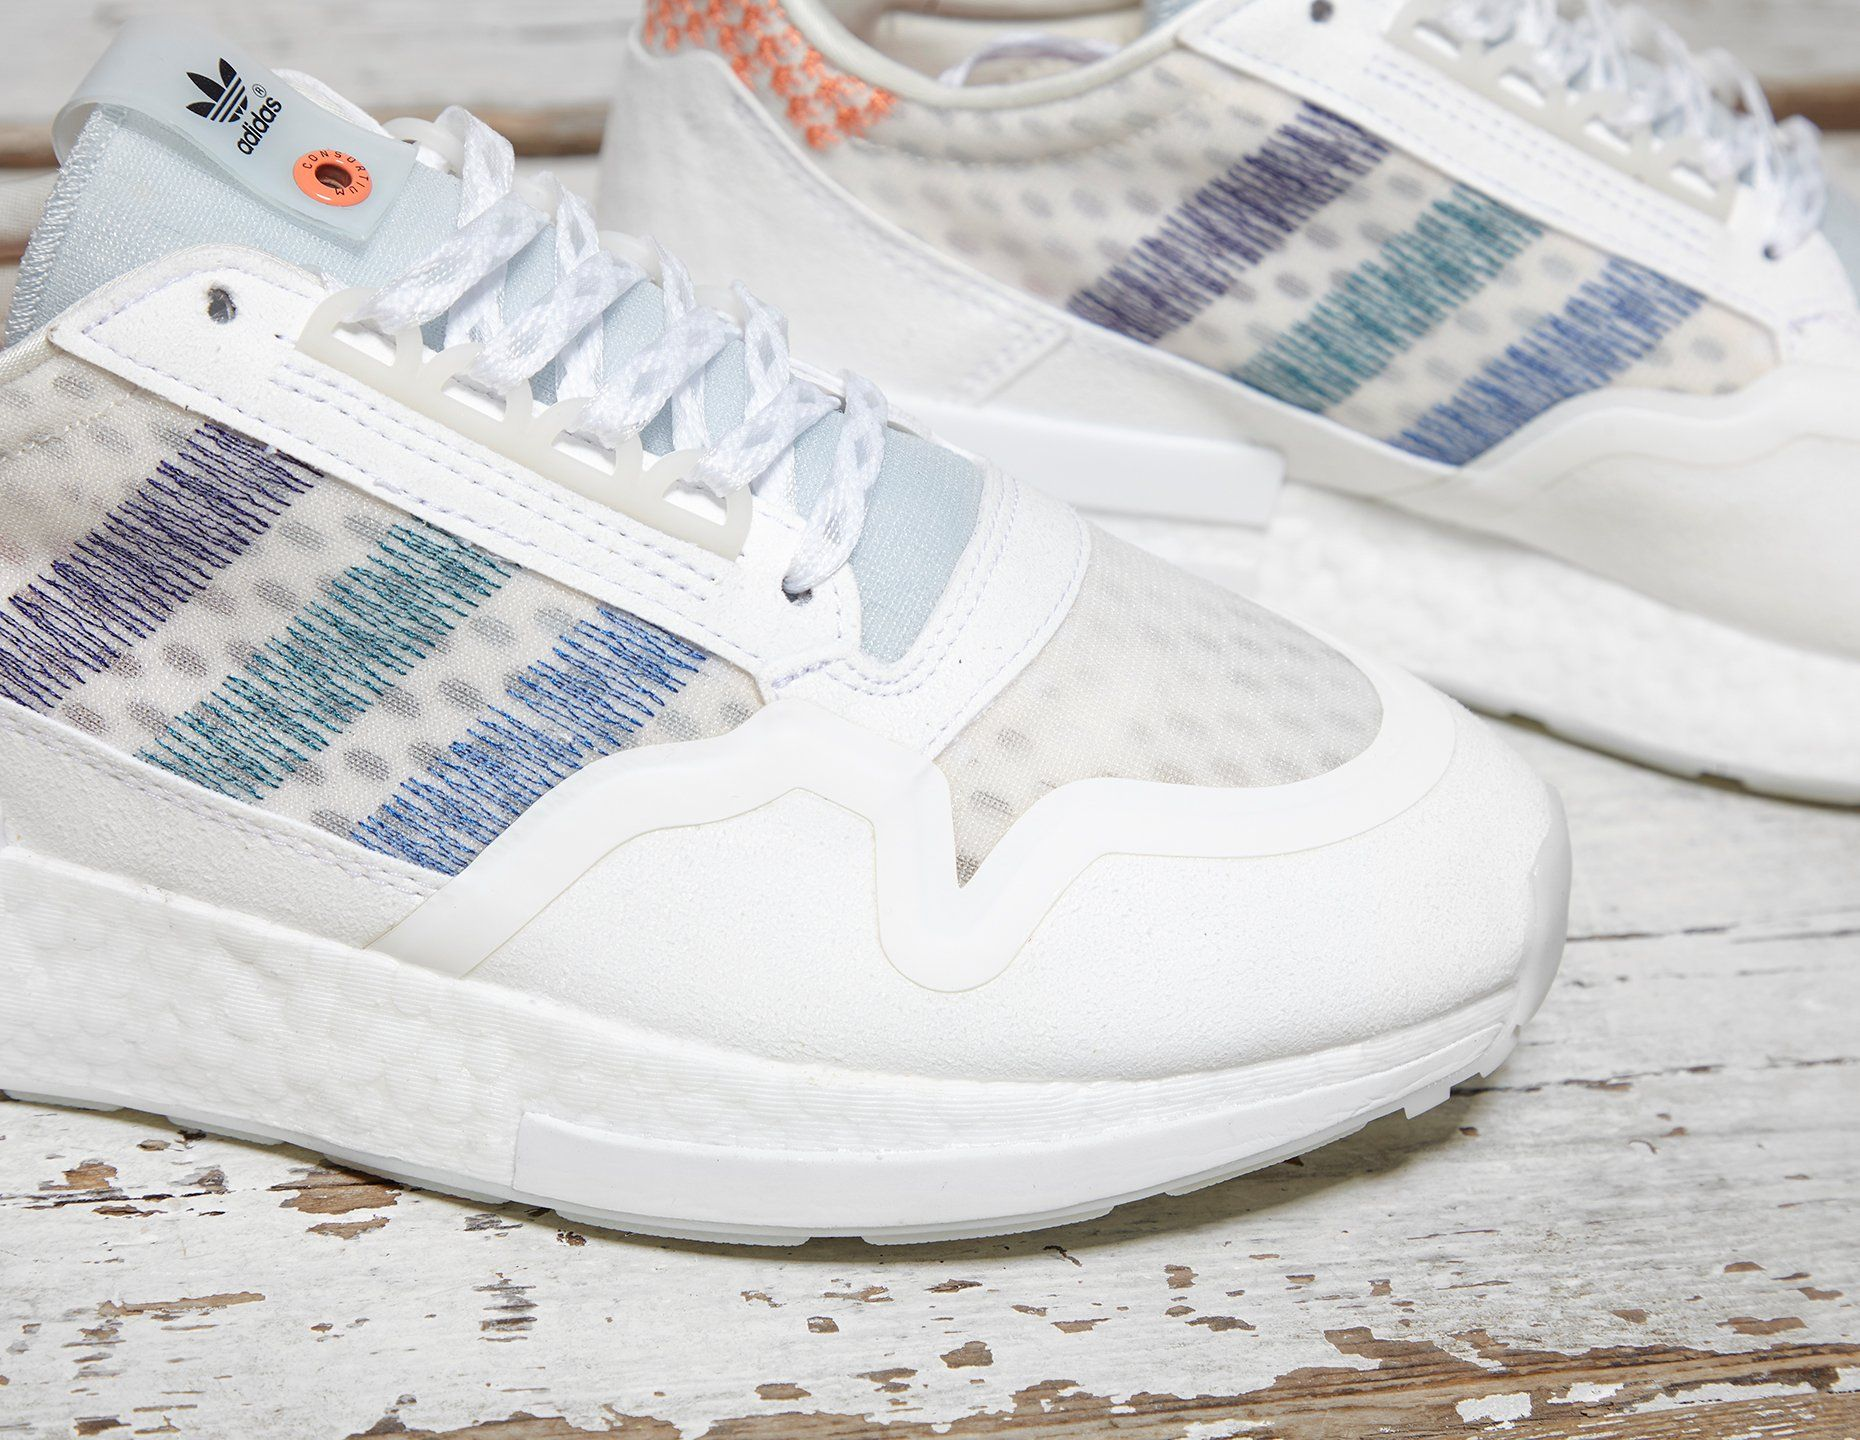 adidas Consortium x Commonwealth ZX 500 RM